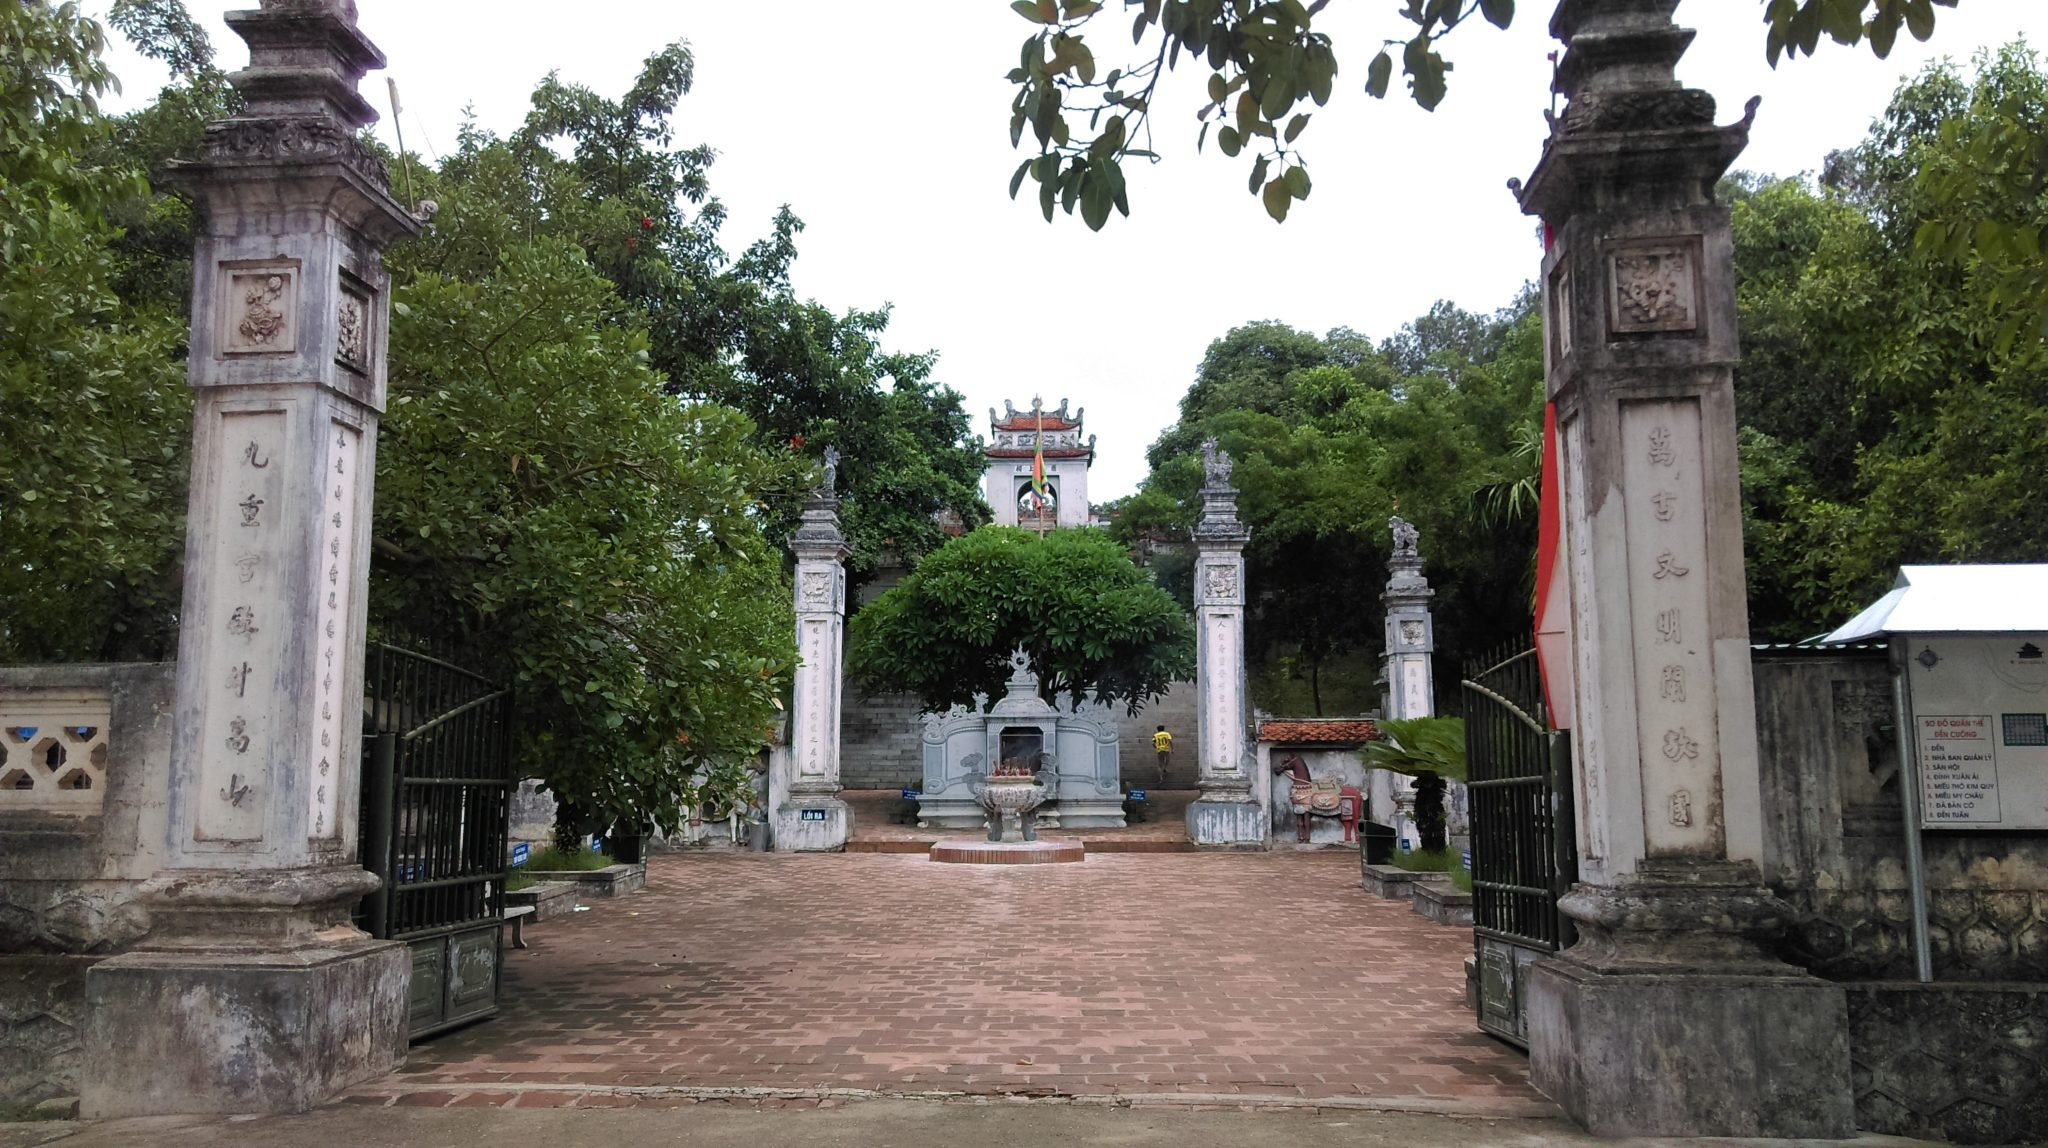 nghe an cuong temple